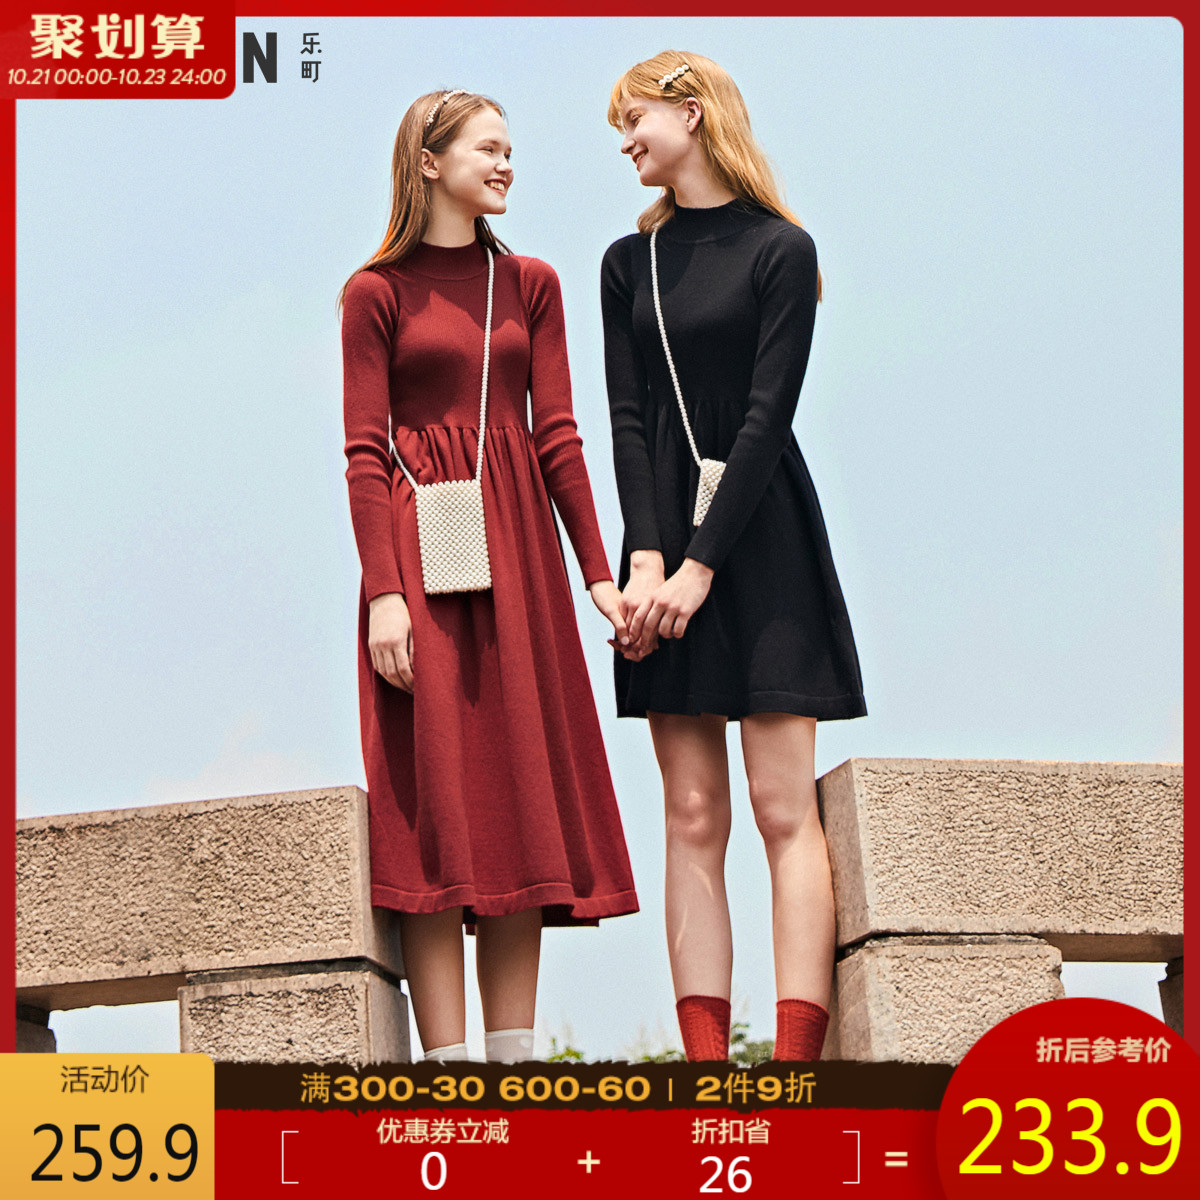 Leding knitted dress autumn 2020 new women's elegant two-color knitted long dress with waist temperament